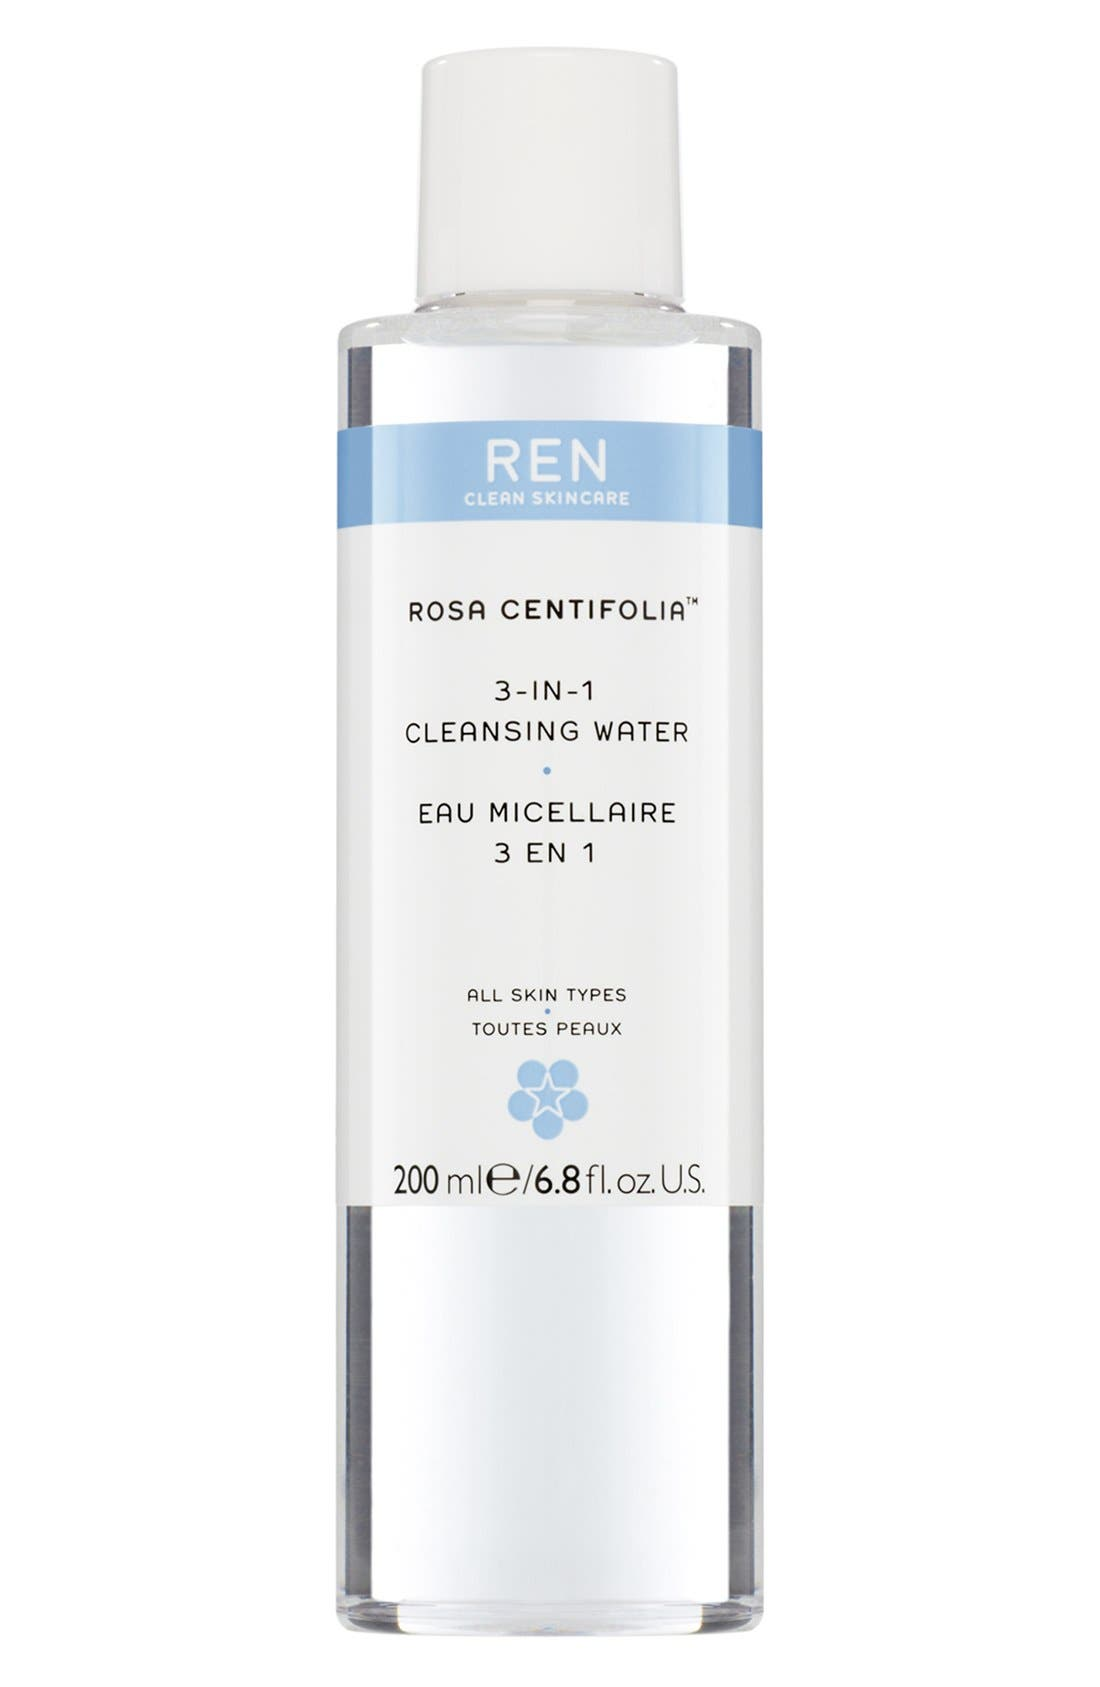 REN 'Rosa Centifolia™' 3-in-1 Cleansing Water